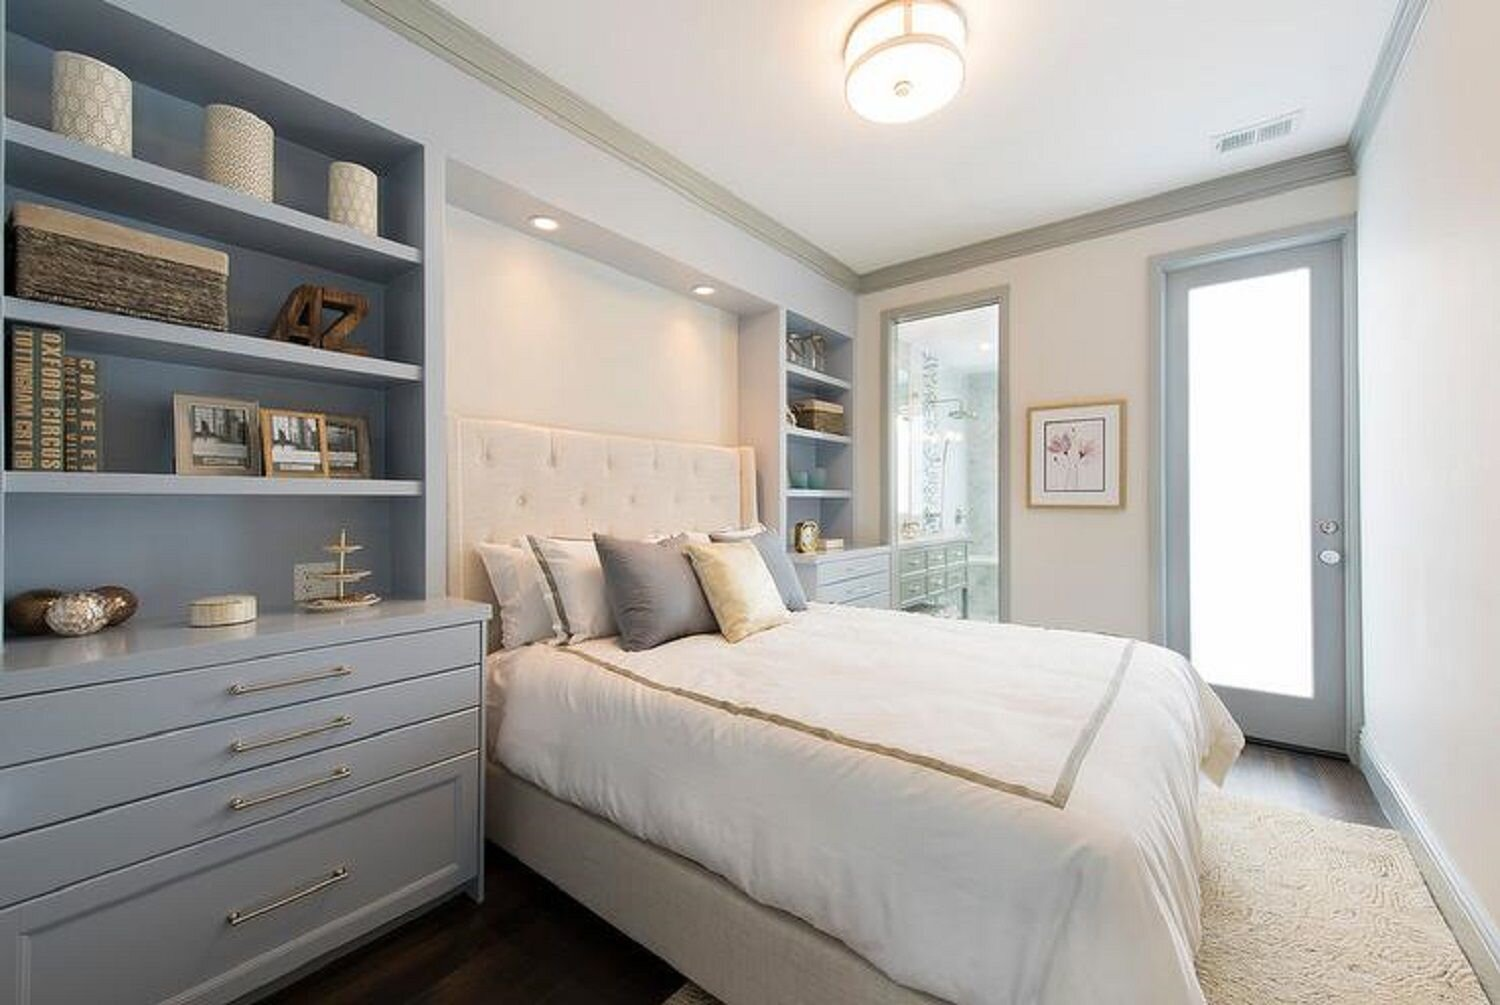 5 Budget Friendly Ways To Remodel Your Bedroom Space Kevin Szabo